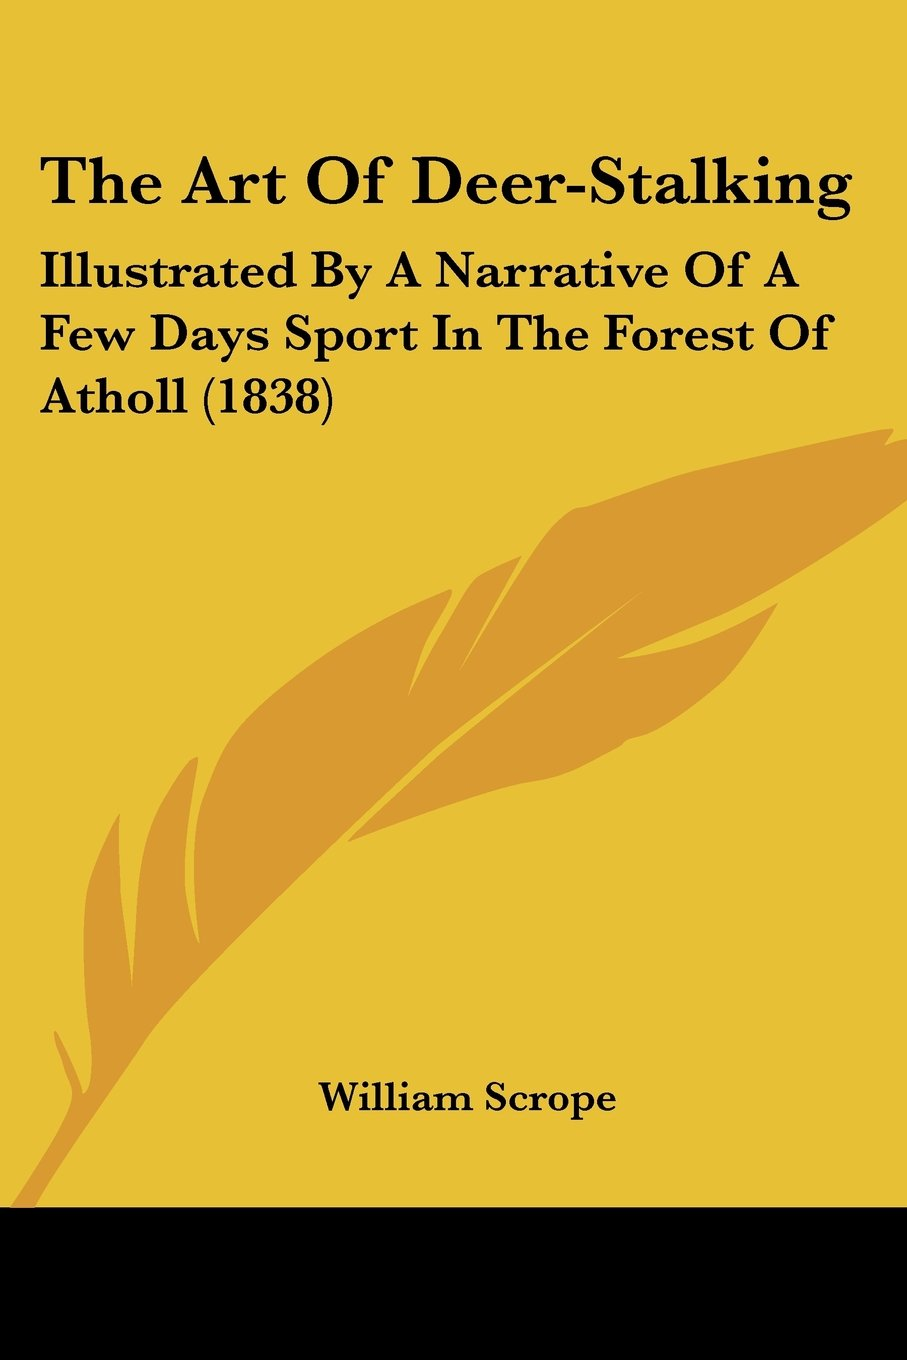 The Art Of Deer-Stalking: Illustrated By A Narrative Of A Few Days Sport In The Forest Of Atholl (1838) ebook